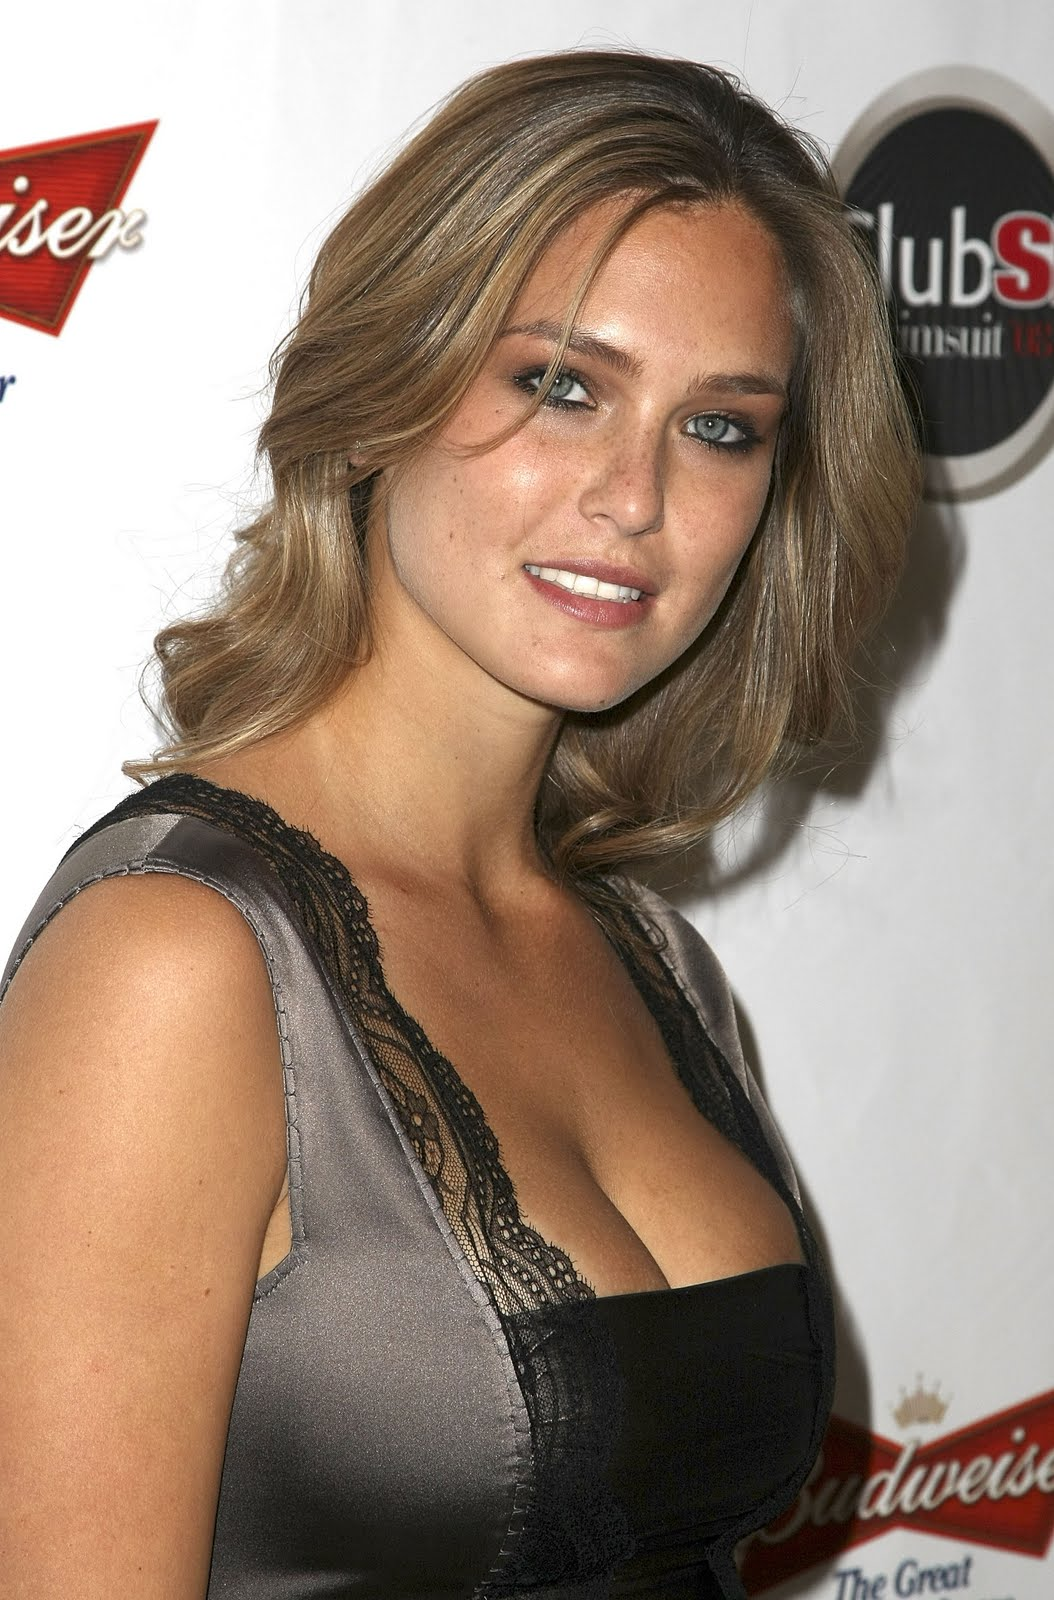 http://4.bp.blogspot.com/-hRNKHAJ0c5Q/TbcVsozF4sI/AAAAAAAAAWc/bbfG-a6Rb0M/s1600/19857-bar-refaeli-sports-illustrated-2008-swimsuit.jpg